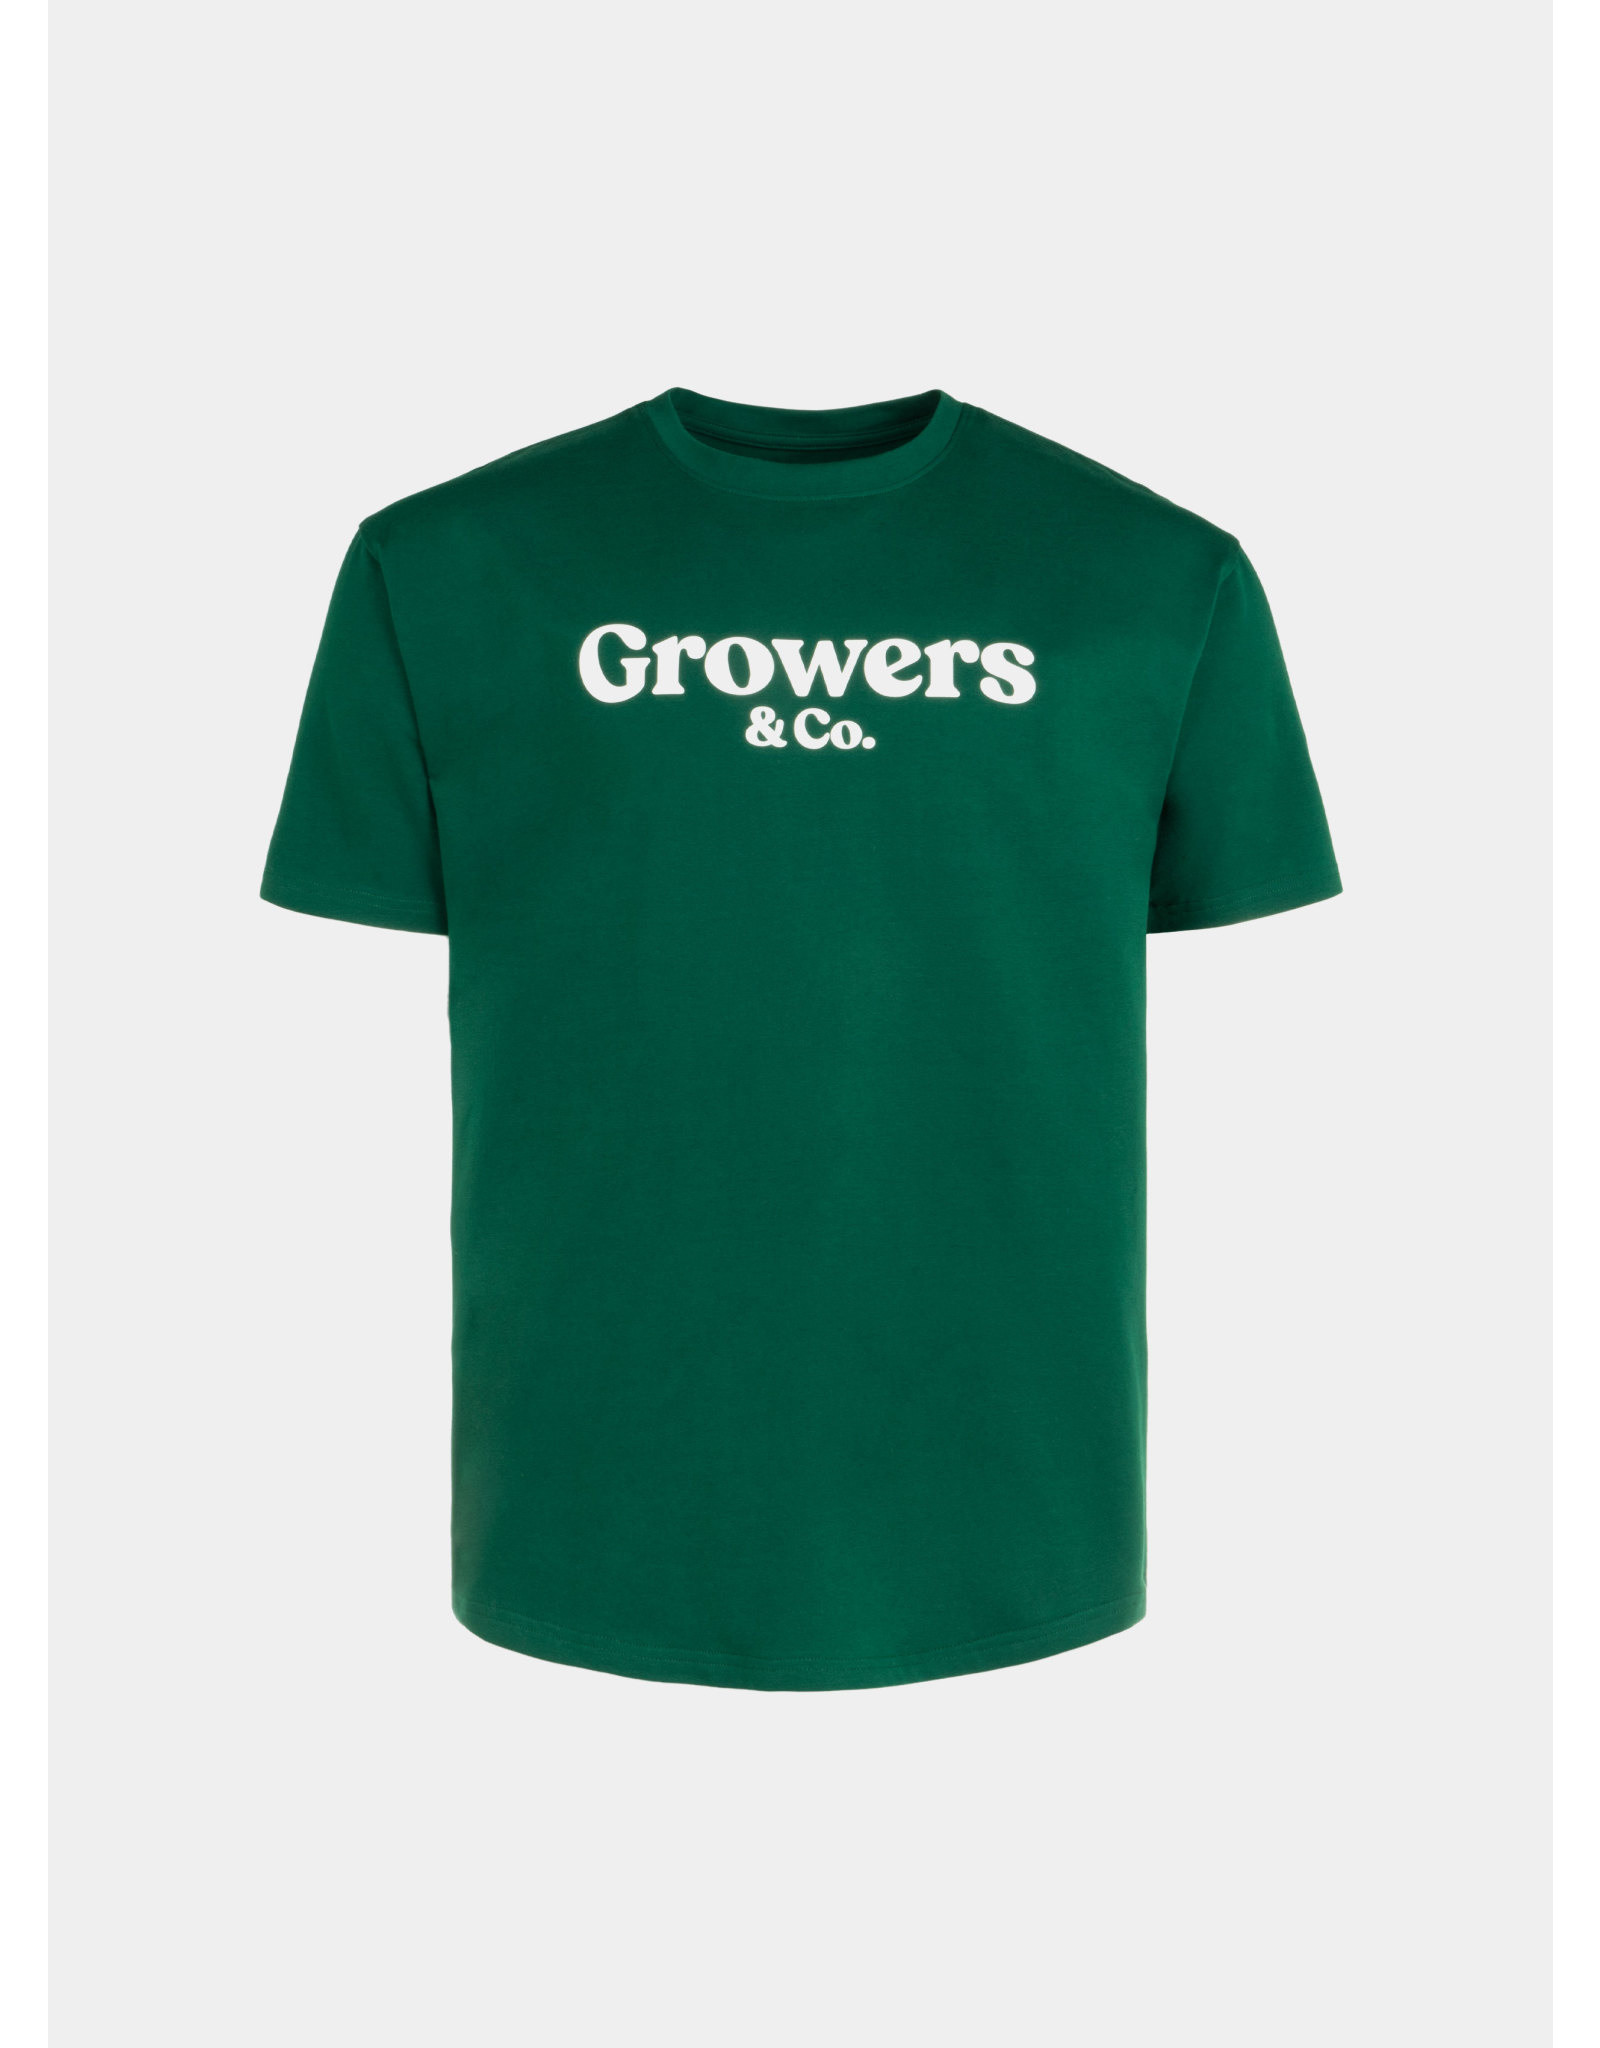 Growers&co Growers mission tee